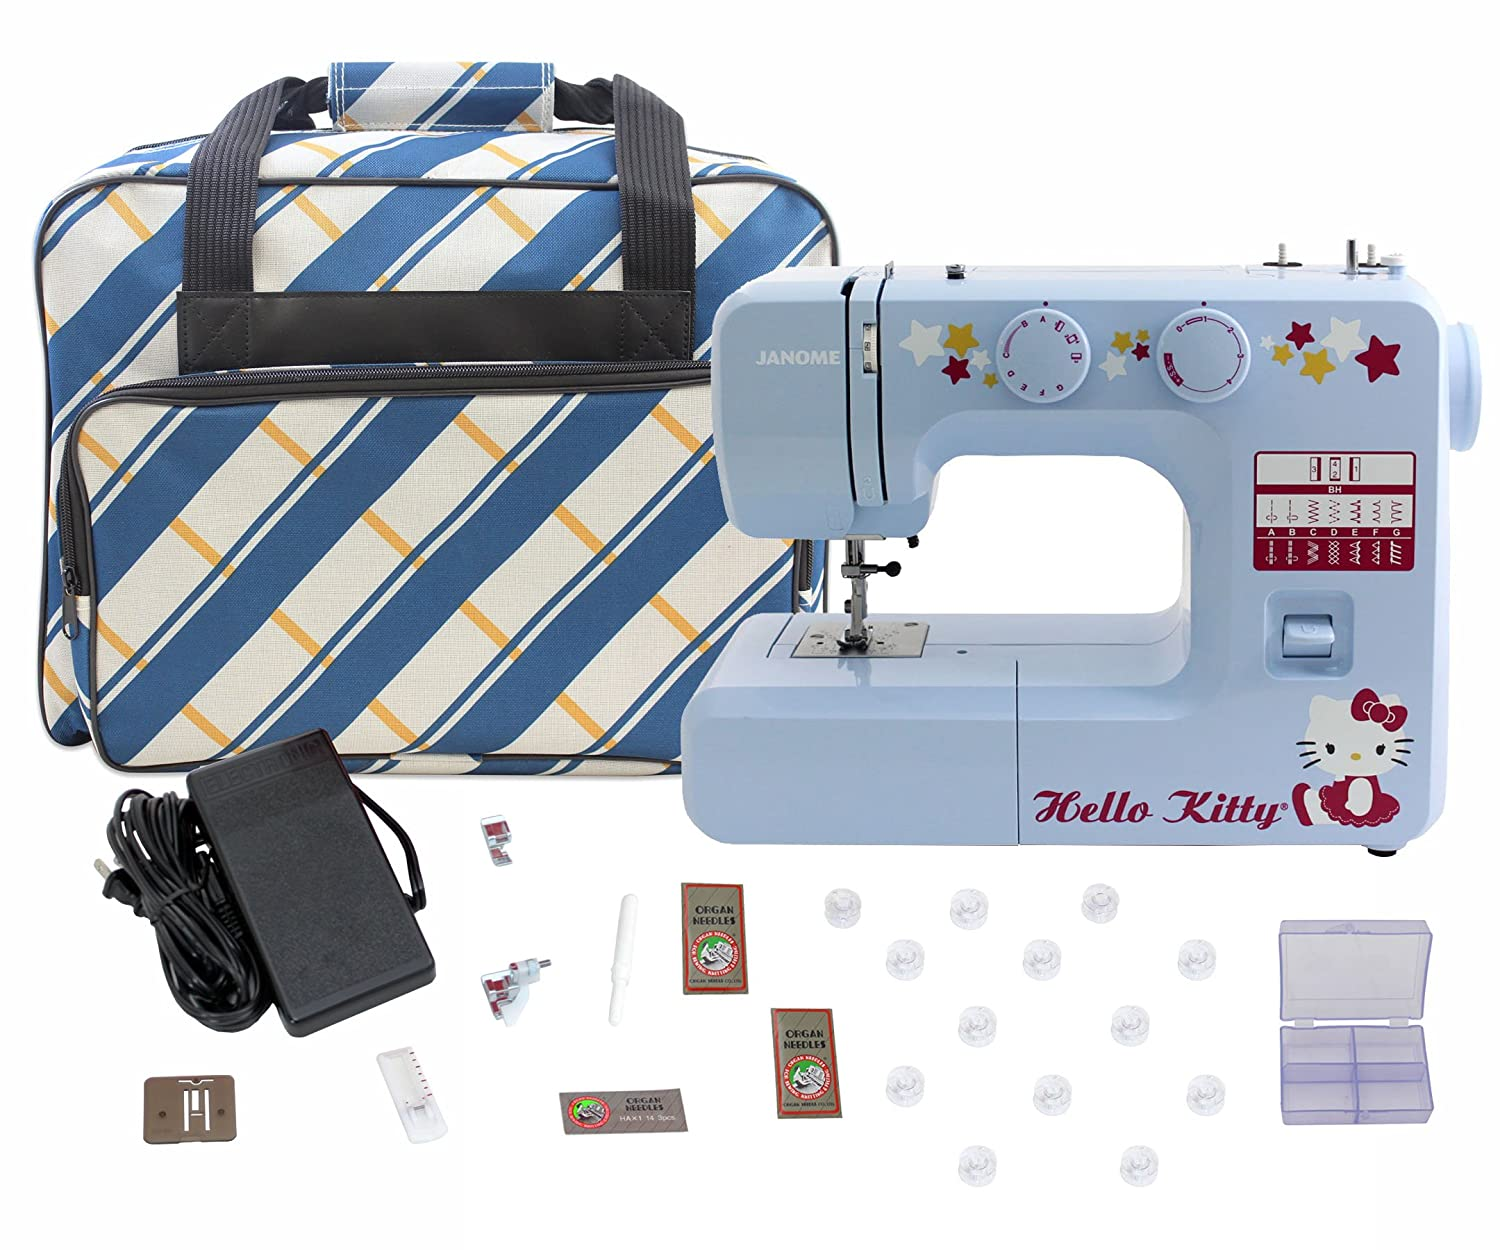 Janome 15312 Blue Hello Kitty Sewing Machine with Bonuspack! 4336999779